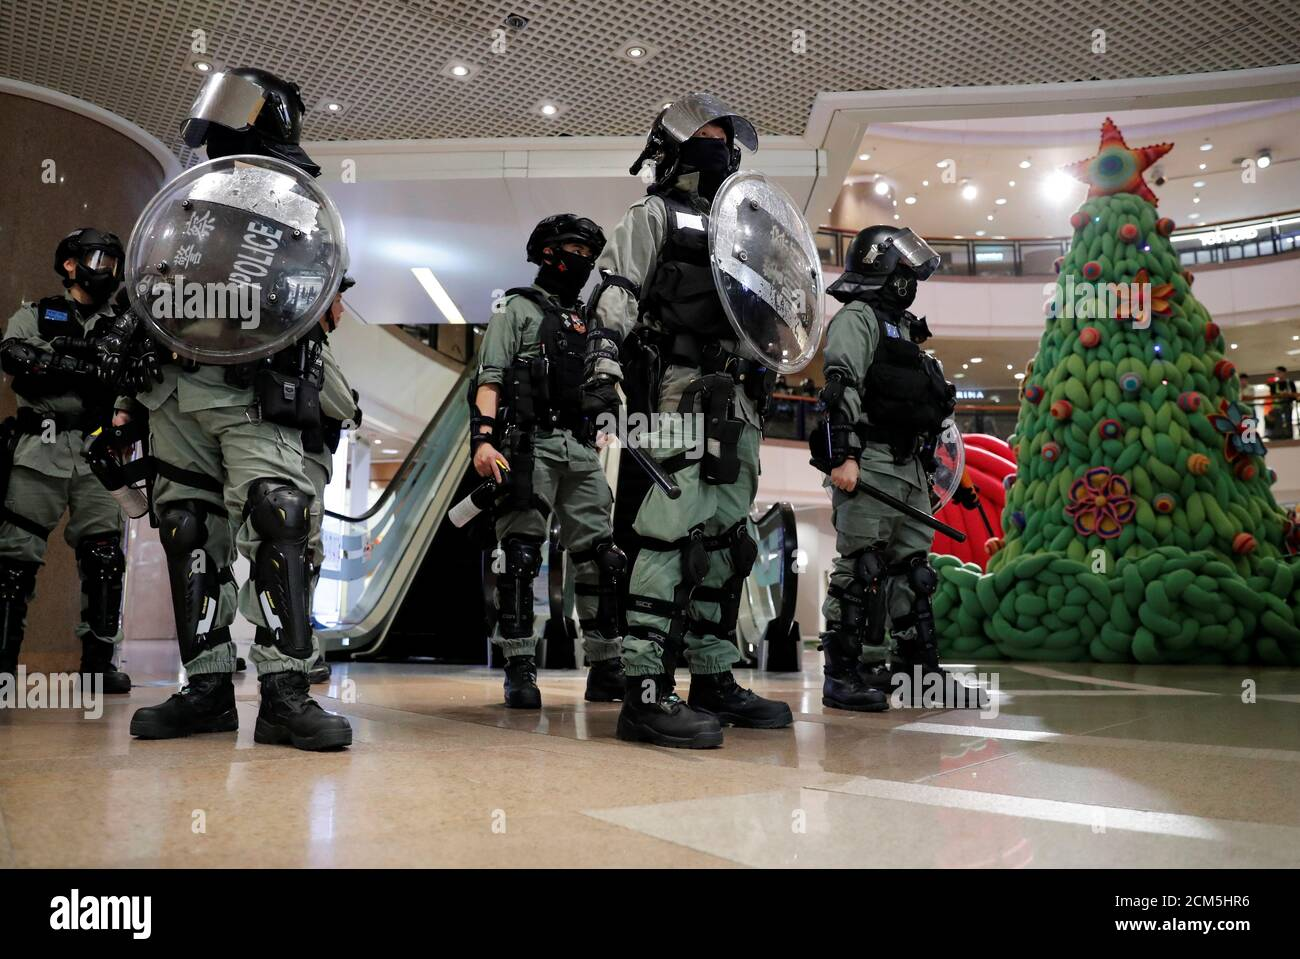 Tyrone Mall Christmas Day 2021 Riot Police Stand Guard Next To A Christmas Tree Inside A Shopping Mall During An Anti